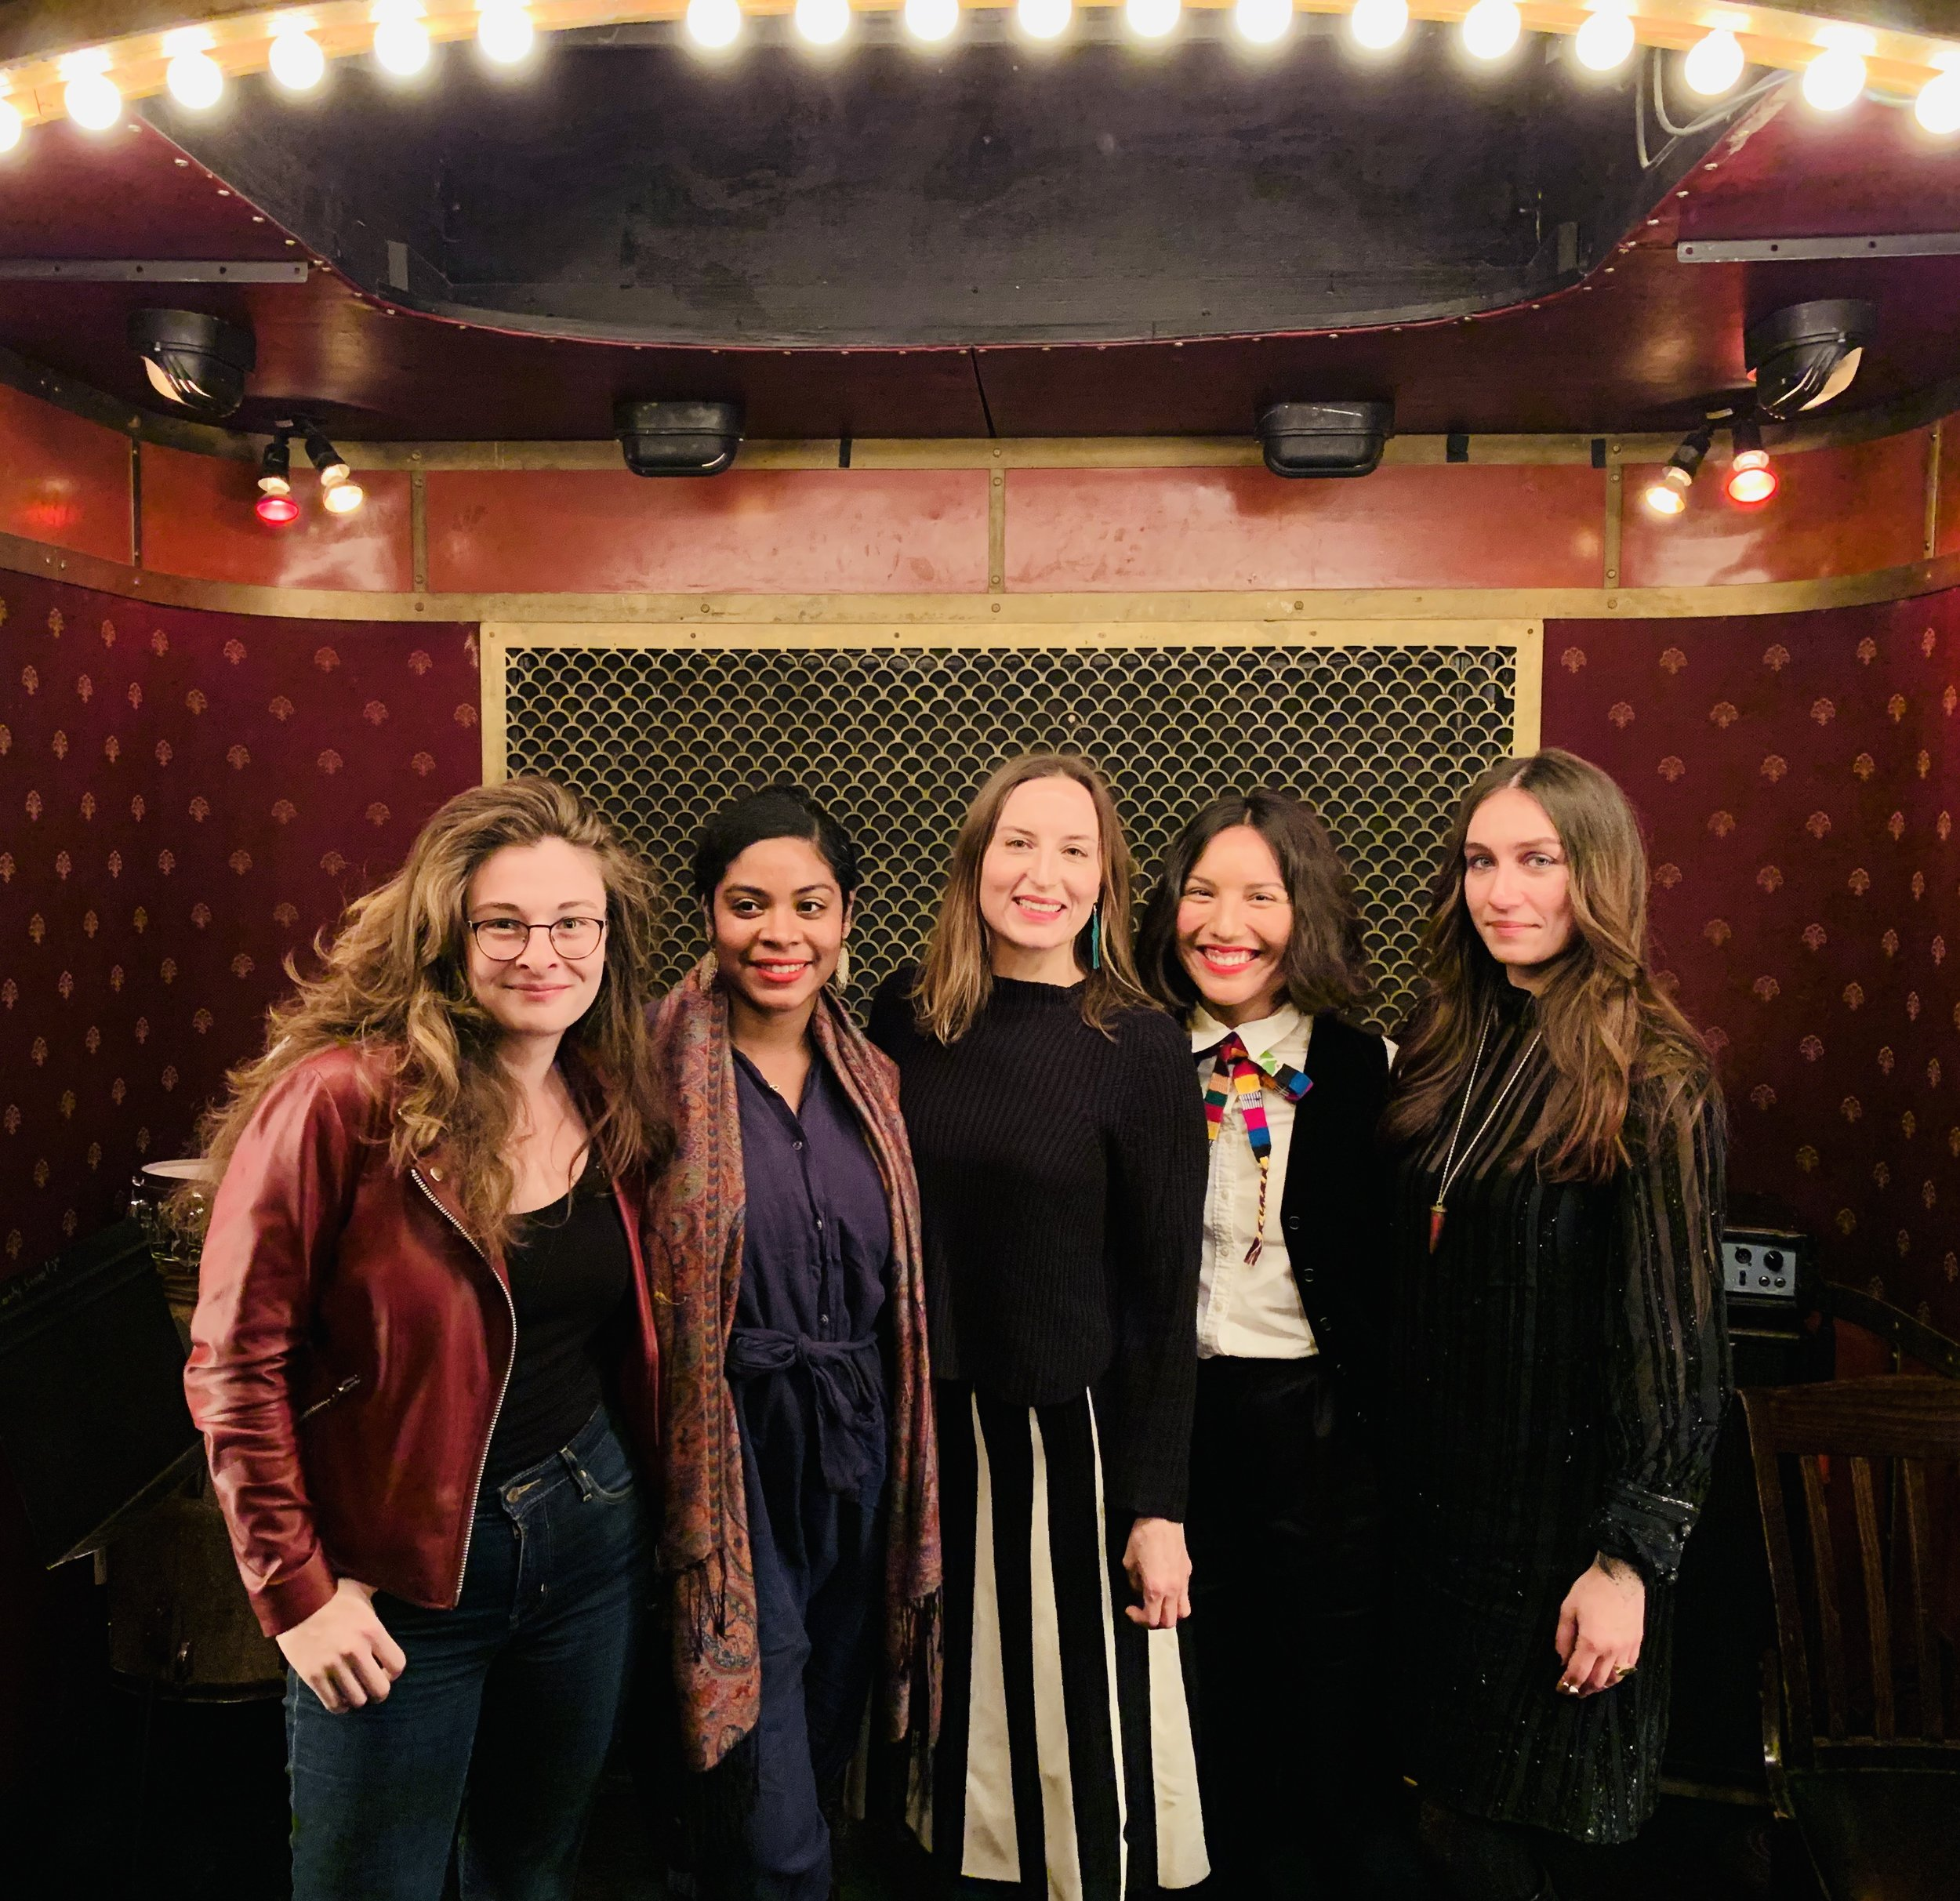 Kaytlin Bailey, Ananda Ambrose, Sarah Dohrmann [instructor], Aleksa Brown, and Liza Buzytsky at the DIVING 2.0 reading at Pete's Candy Store in Williamsburg, Brooklyn, December 22, 2018.